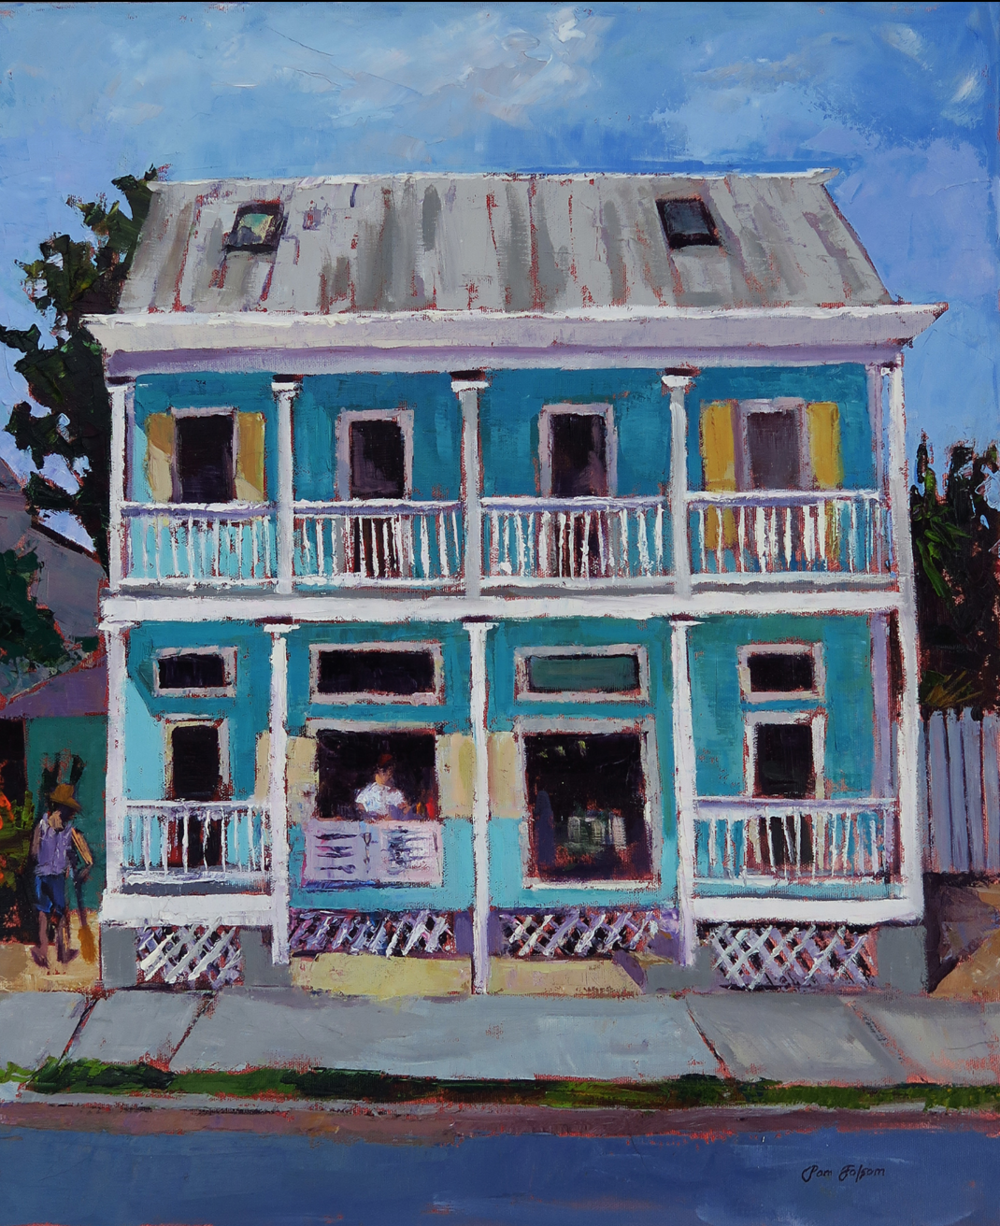 Pam Folsom, Island Pizza  Oil on Canvas, 24x20 in.